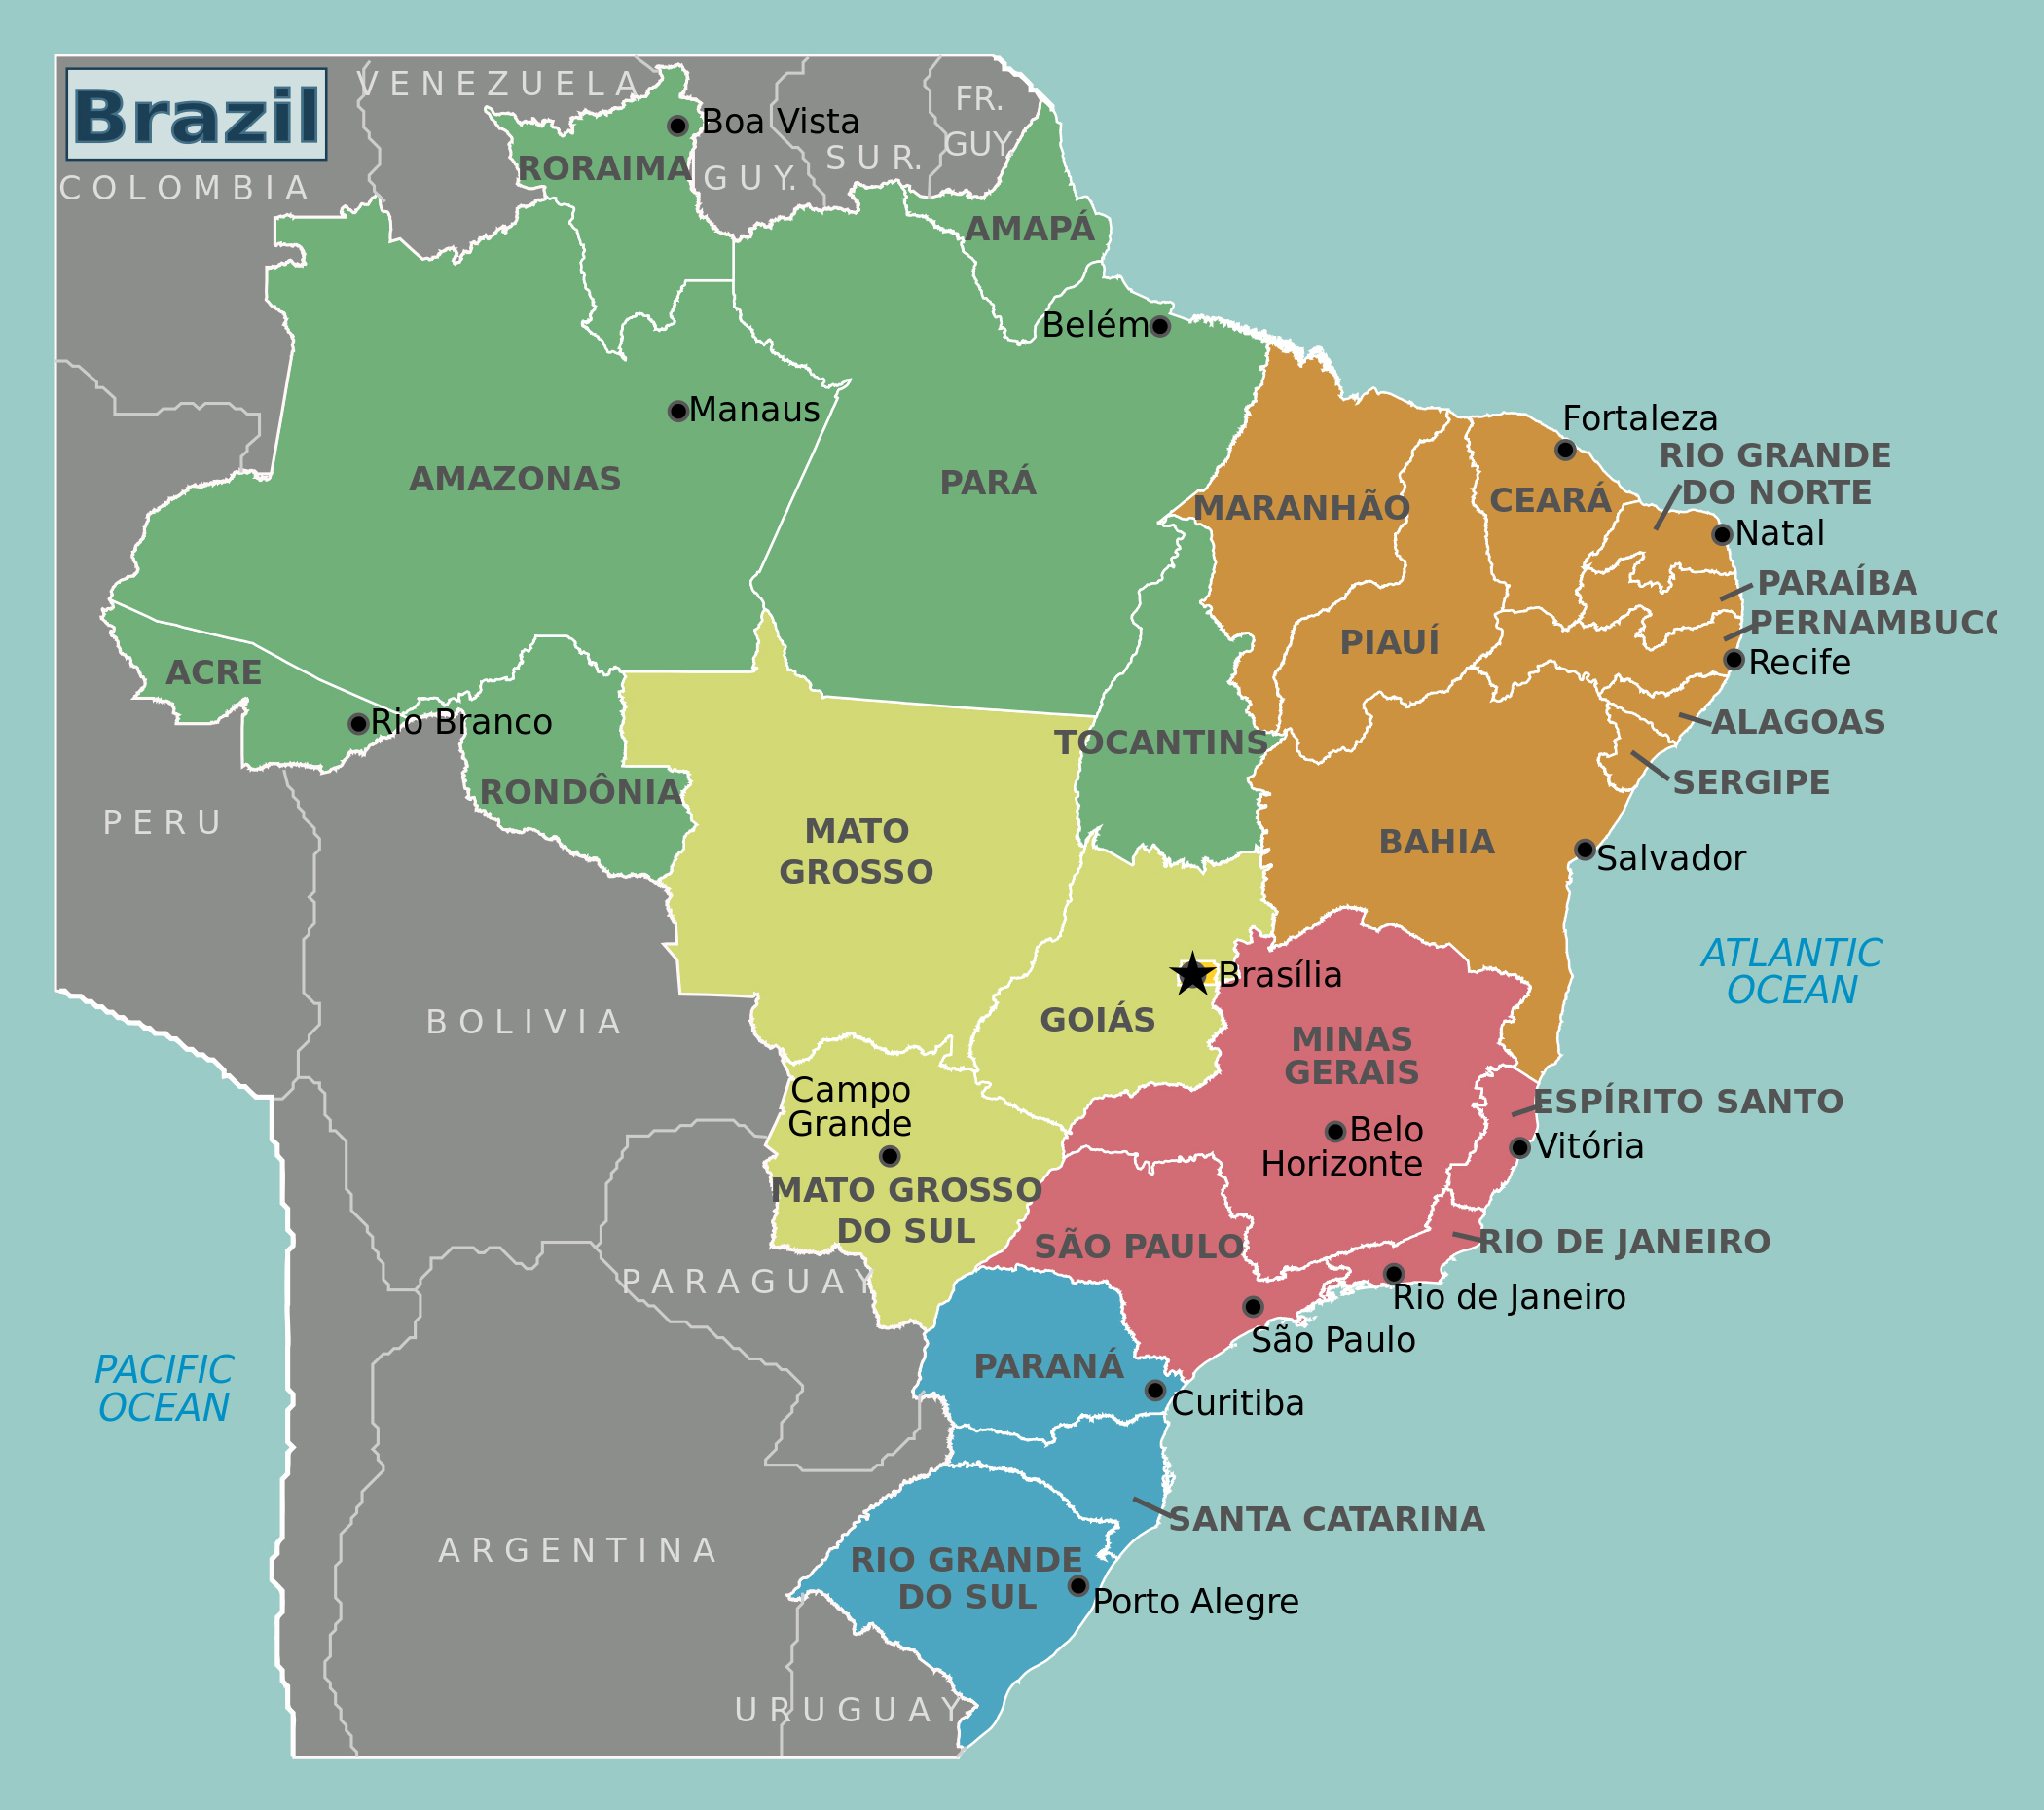 Large Brazil regions map Brazil South America Mapsland Maps